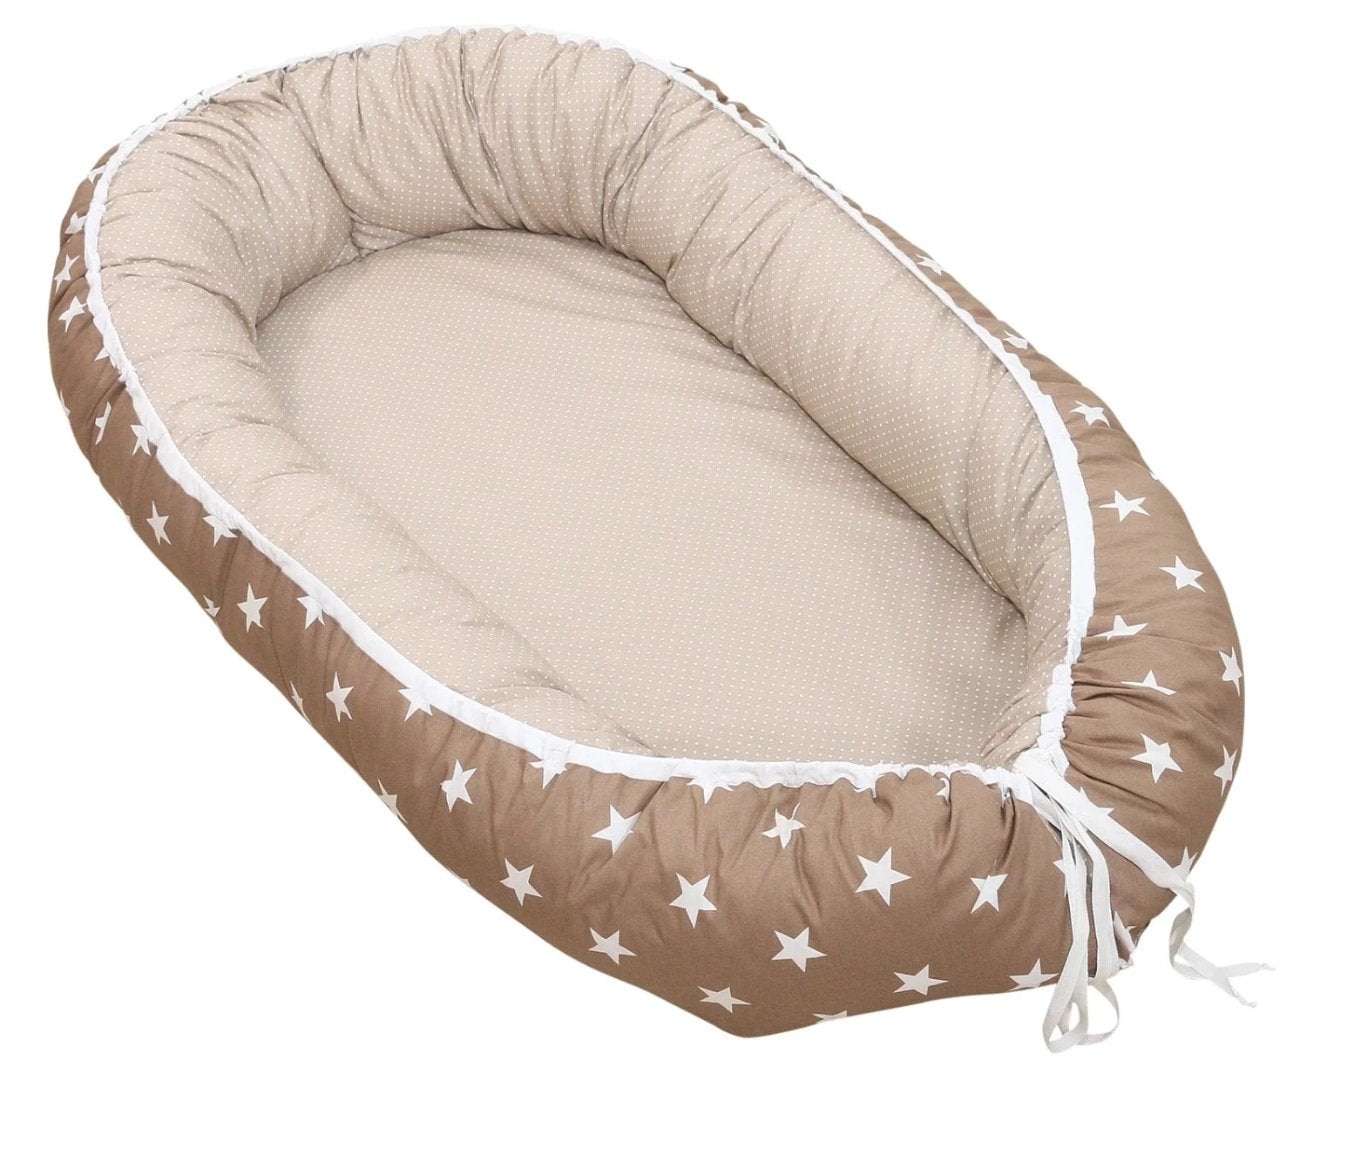 "Baby Lounger – Baby Sleeper Bed, Infant Nest, Beige/ Brown with Stars, 22"" x 37"""